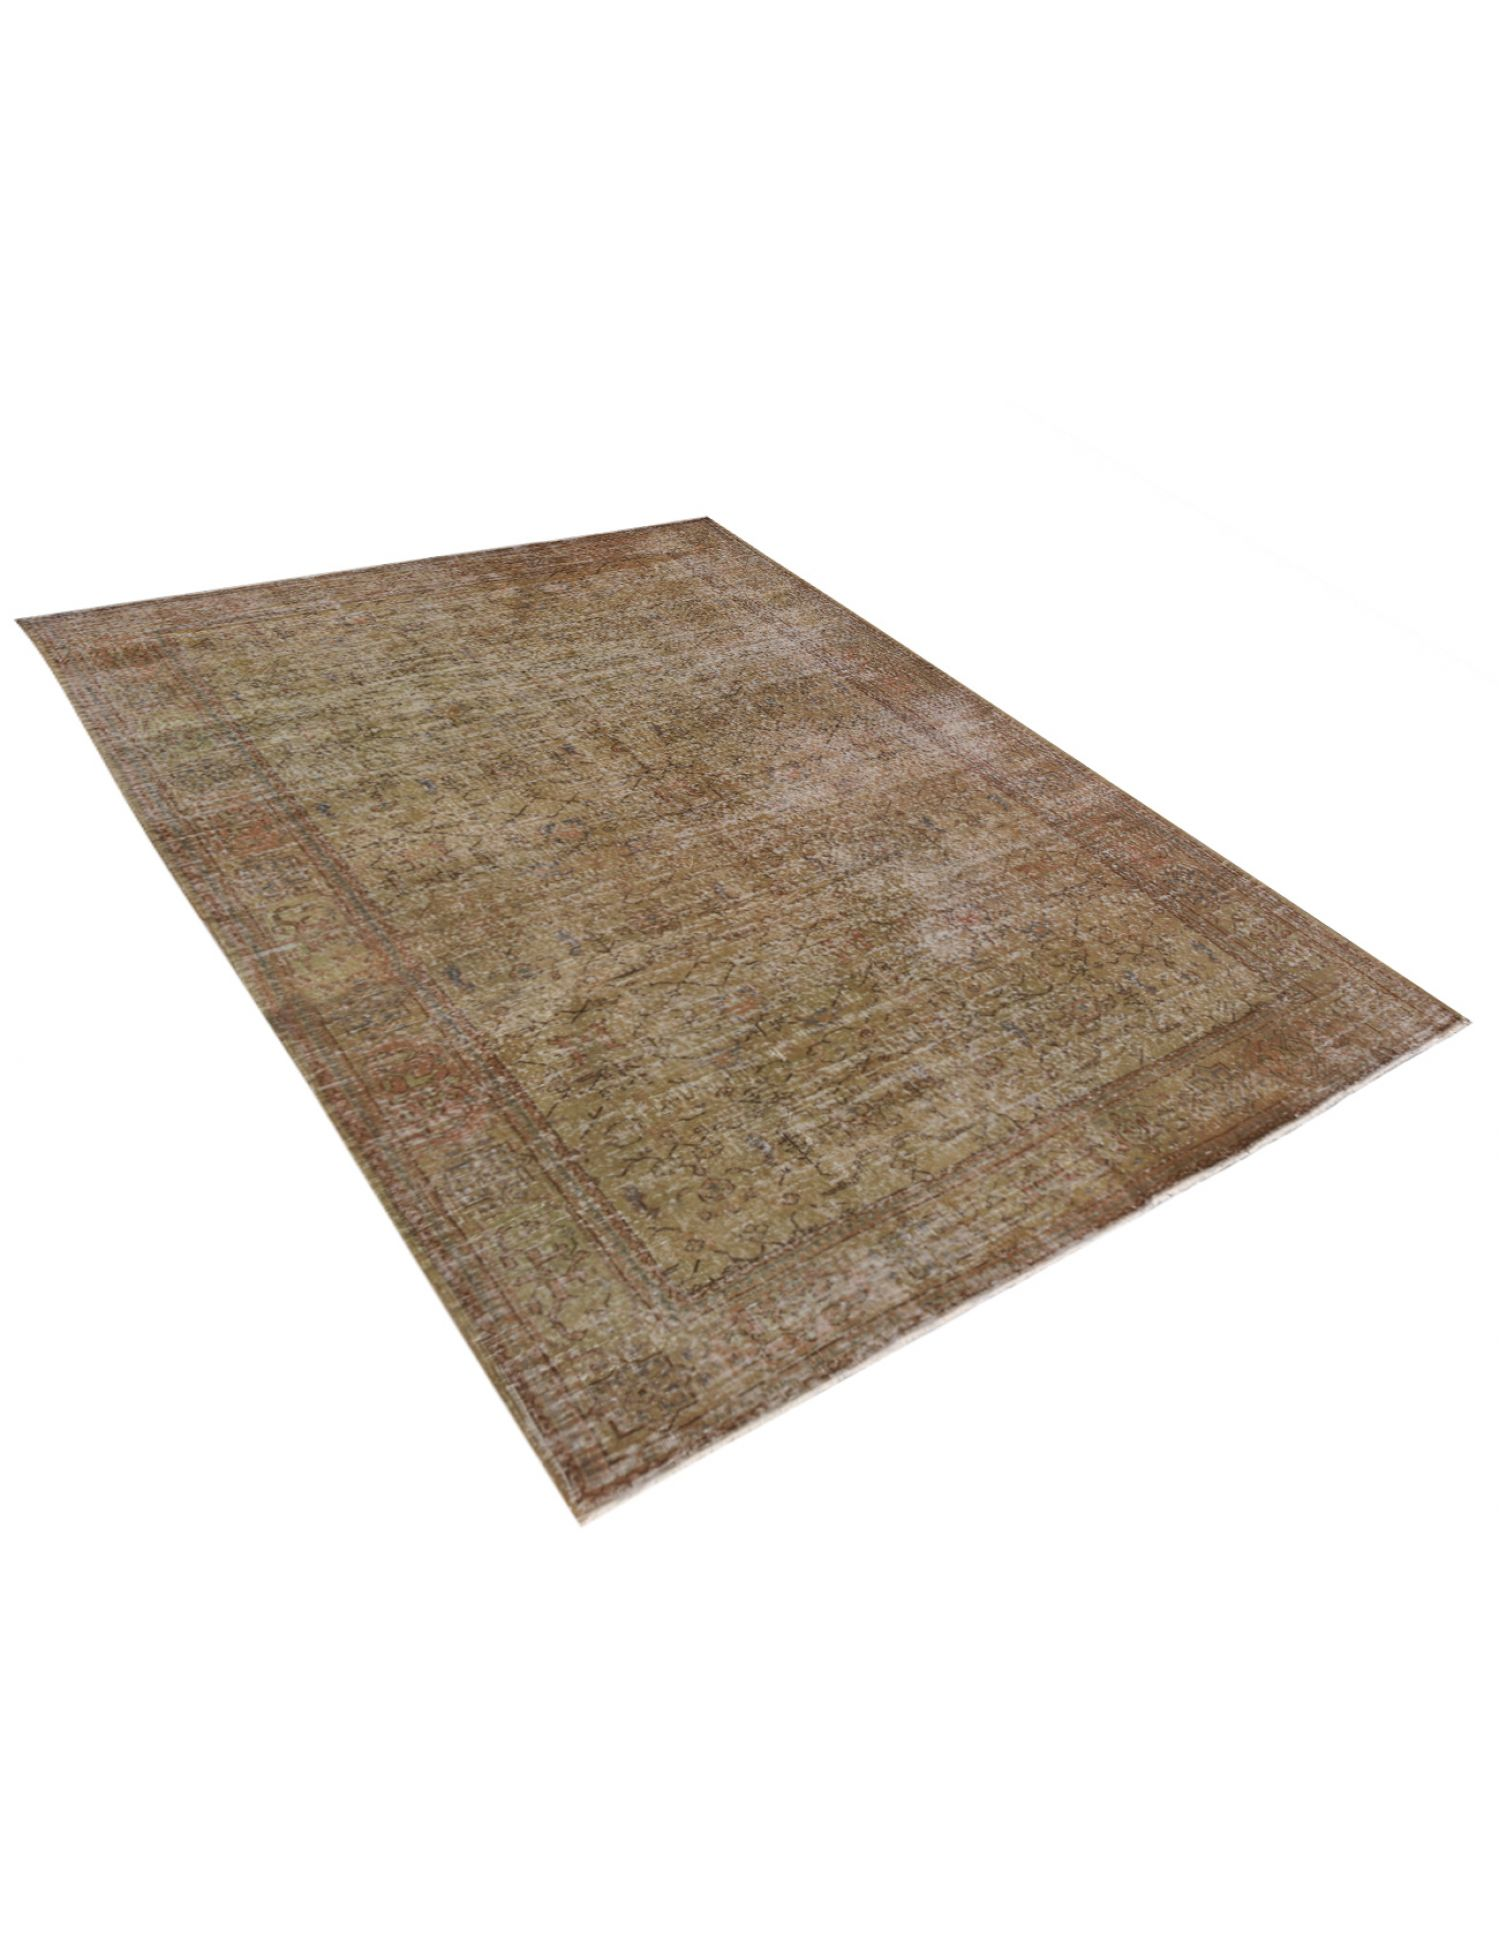 Vintage Carpet  brown <br/>330 x 225 cm